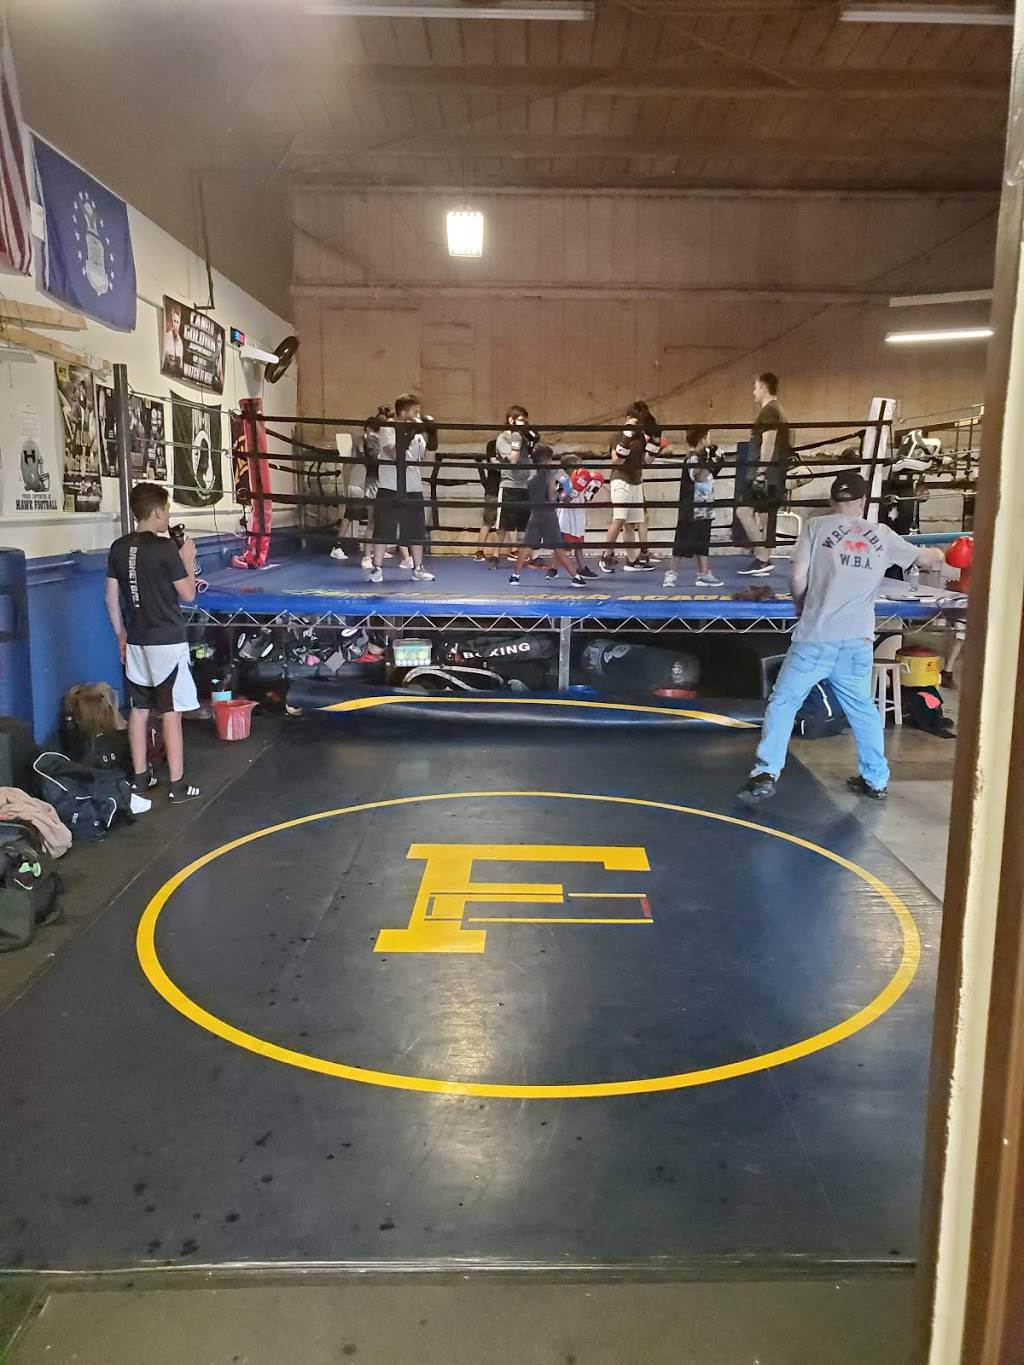 MBA Boxing Gym - gym  | Photo 1 of 3 | Address: 401 Farm to Market 685 #204, Pflugerville, TX 78660, USA | Phone: (512) 736-8443